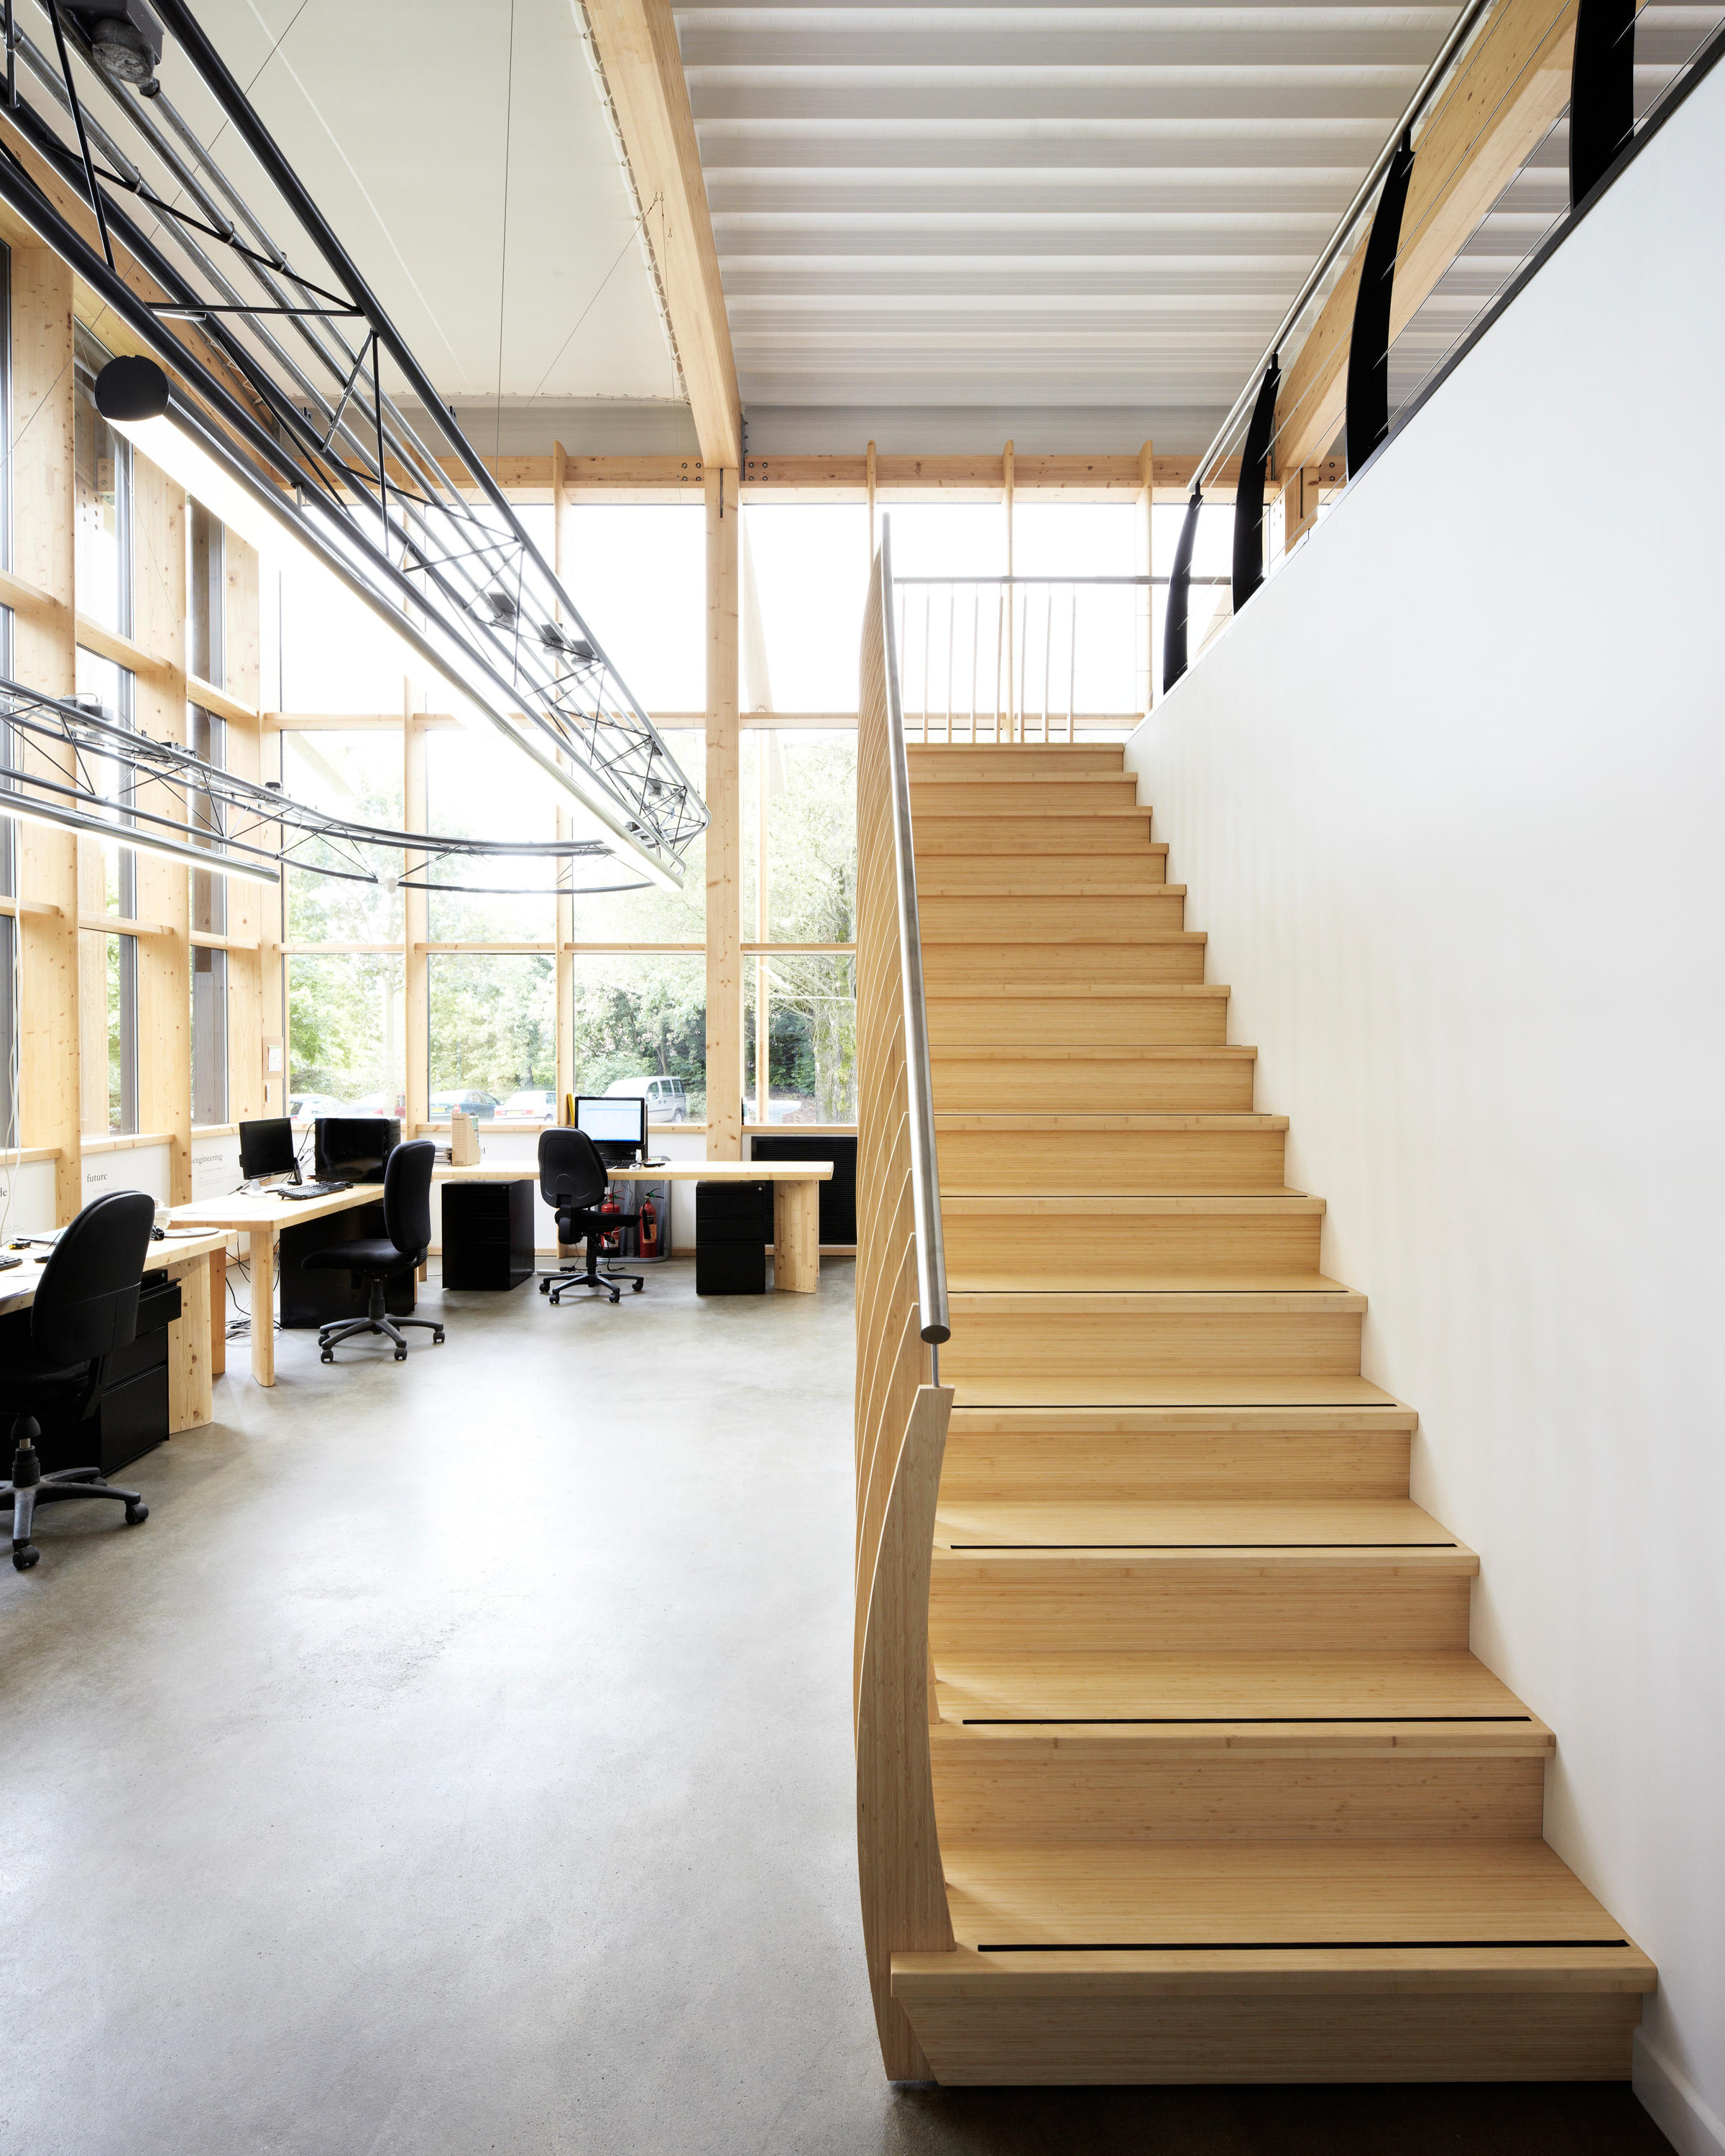 Mindstep straight stairs wood trh 517 wood stairs from - Fotos de escaleras de interior ...